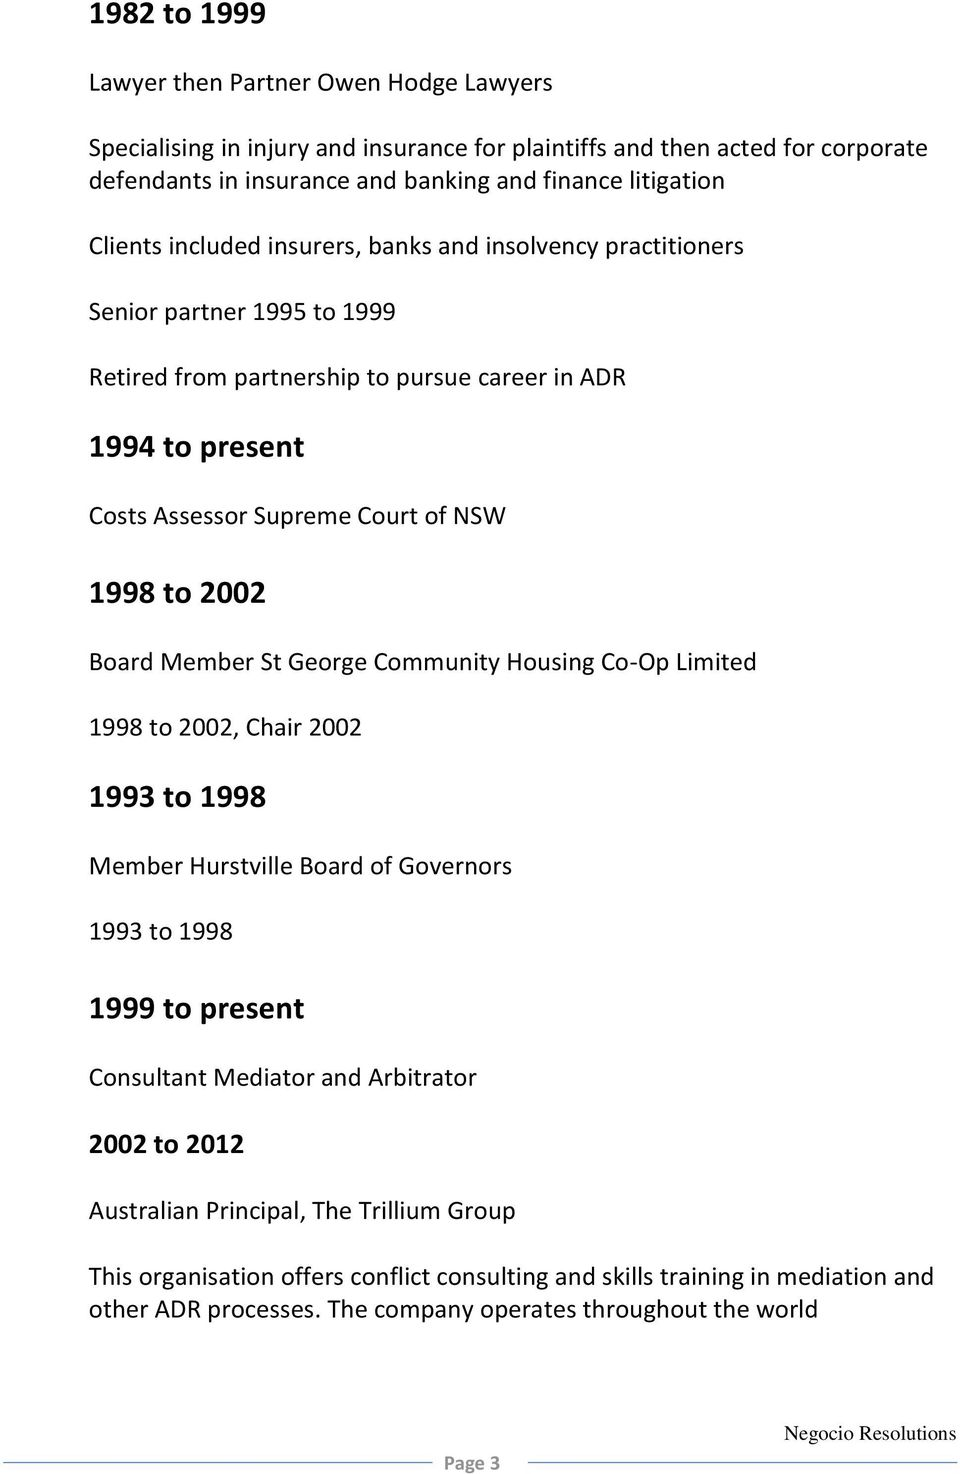 2002 Board Member St George Community Housing Co-Op Limited 1998 to 2002, Chair 2002 1993 to 1998 Member Hurstville Board of Governors 1993 to 1998 1999 to present Consultant Mediator and Arbitrator